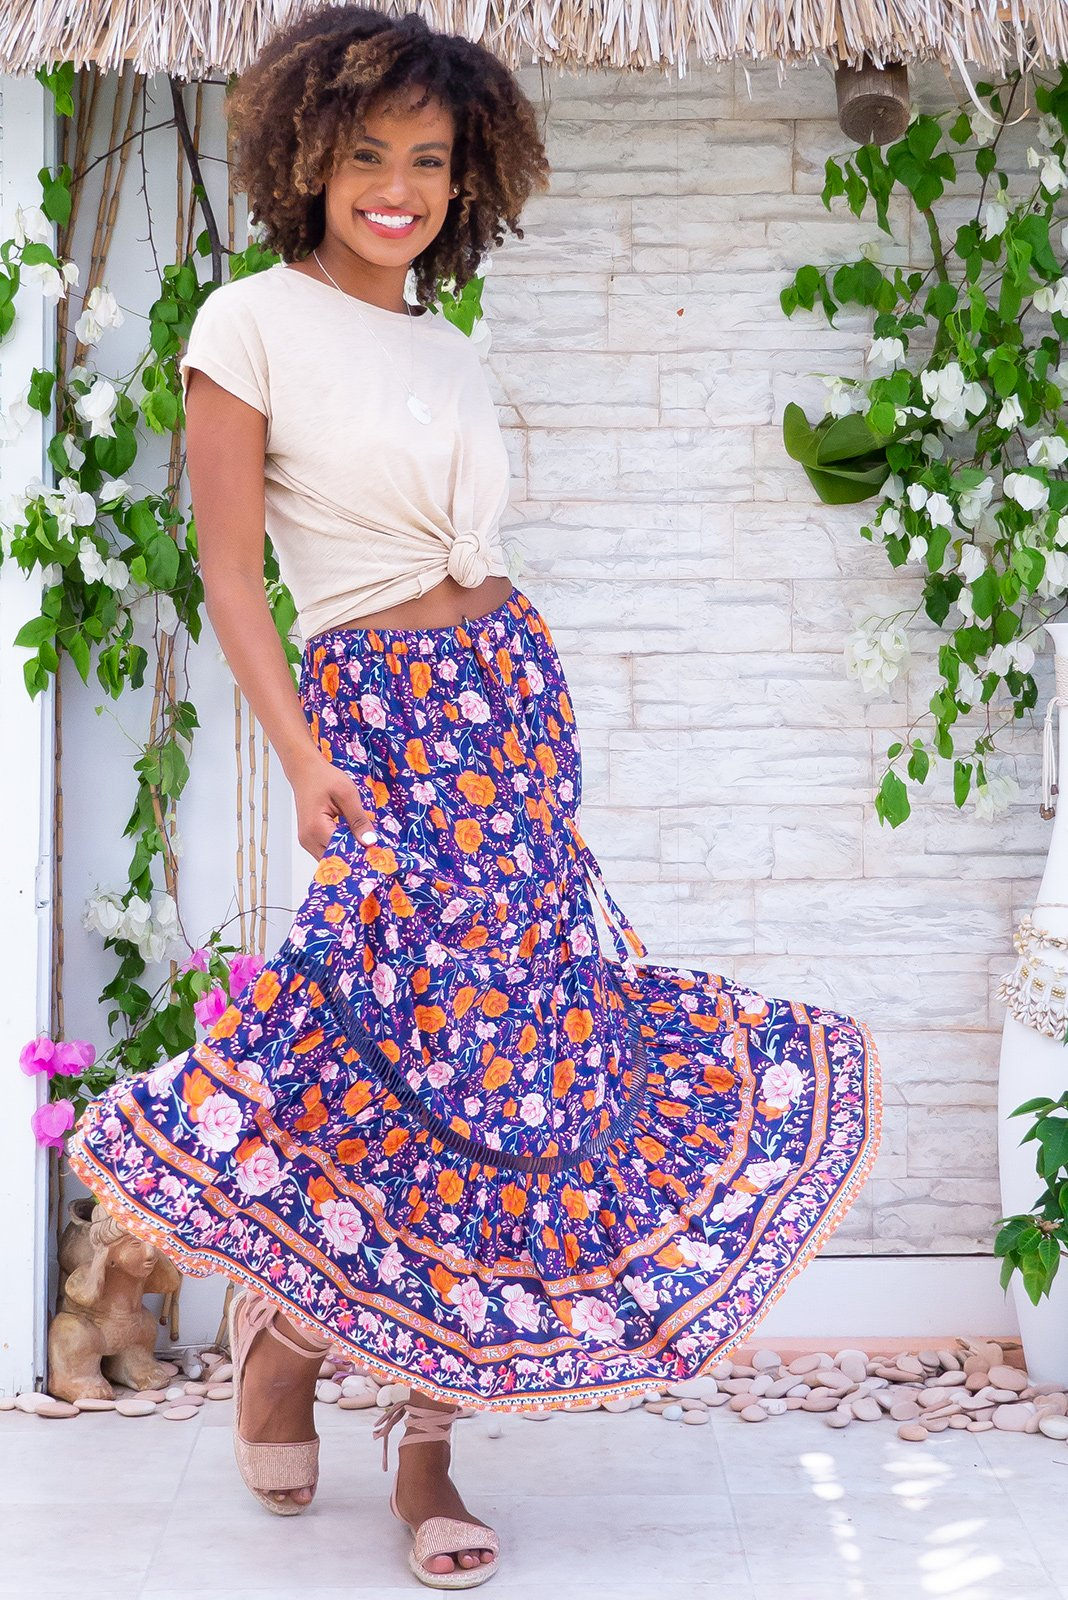 Bonnie Rambling Roses Navy Maxi Skirt features elasticated waist with adjustable drawstring tie, tiered, gathered skirt, a row of open work lace, side pockets, deep navy with a multi-tonal floral print, and order print features a bright orange in woven 100% rayon.